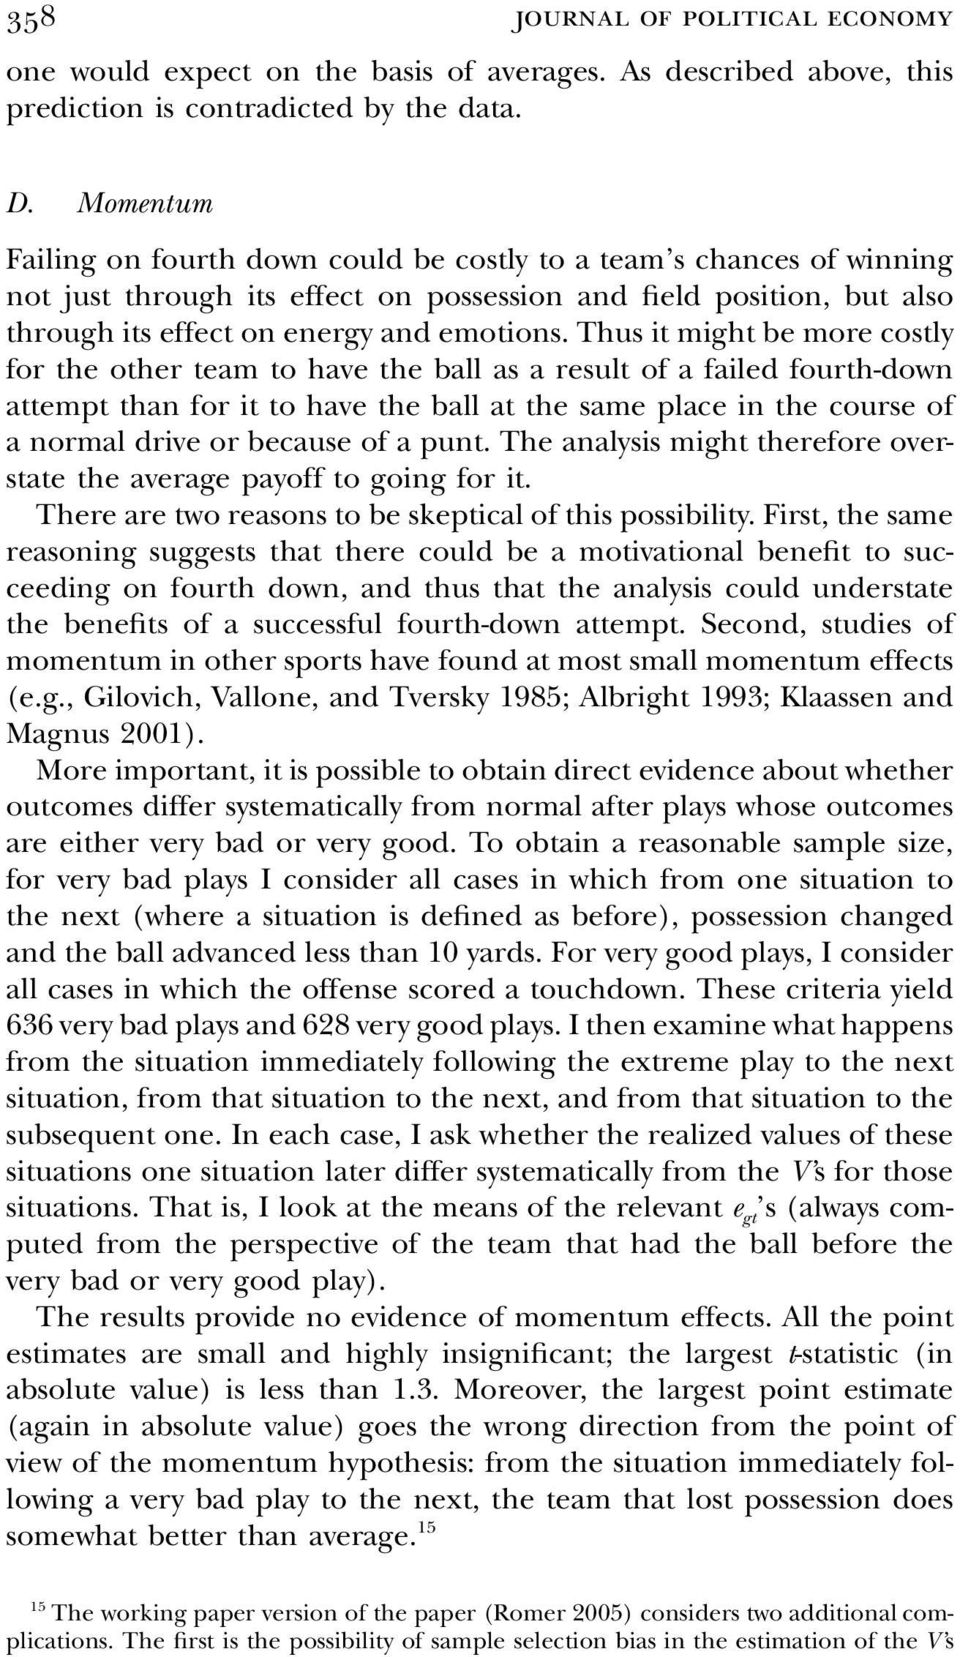 Thus t mght be more costly for the other team to have the ball as a result of a faled fourth-down attempt than for t to have the ball at the same place n the course of a normal drve or because of a